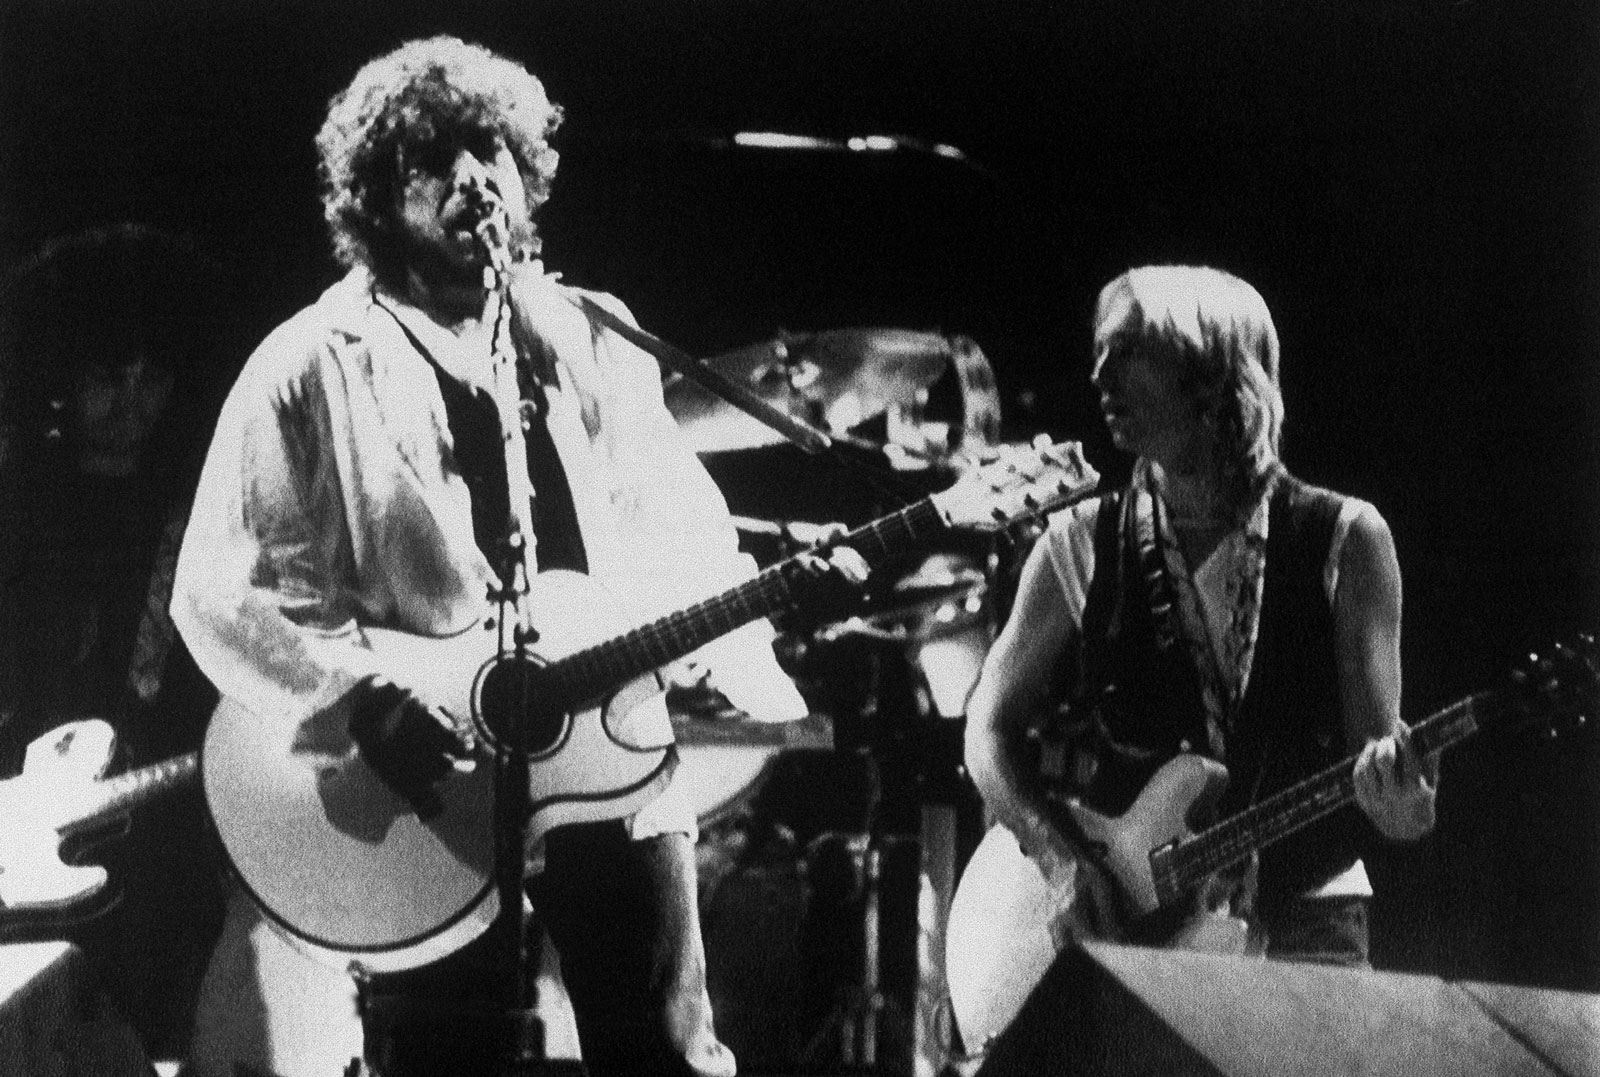 Bob Dylan performing with Tom Petty in Modena, Italy September 13, 1987